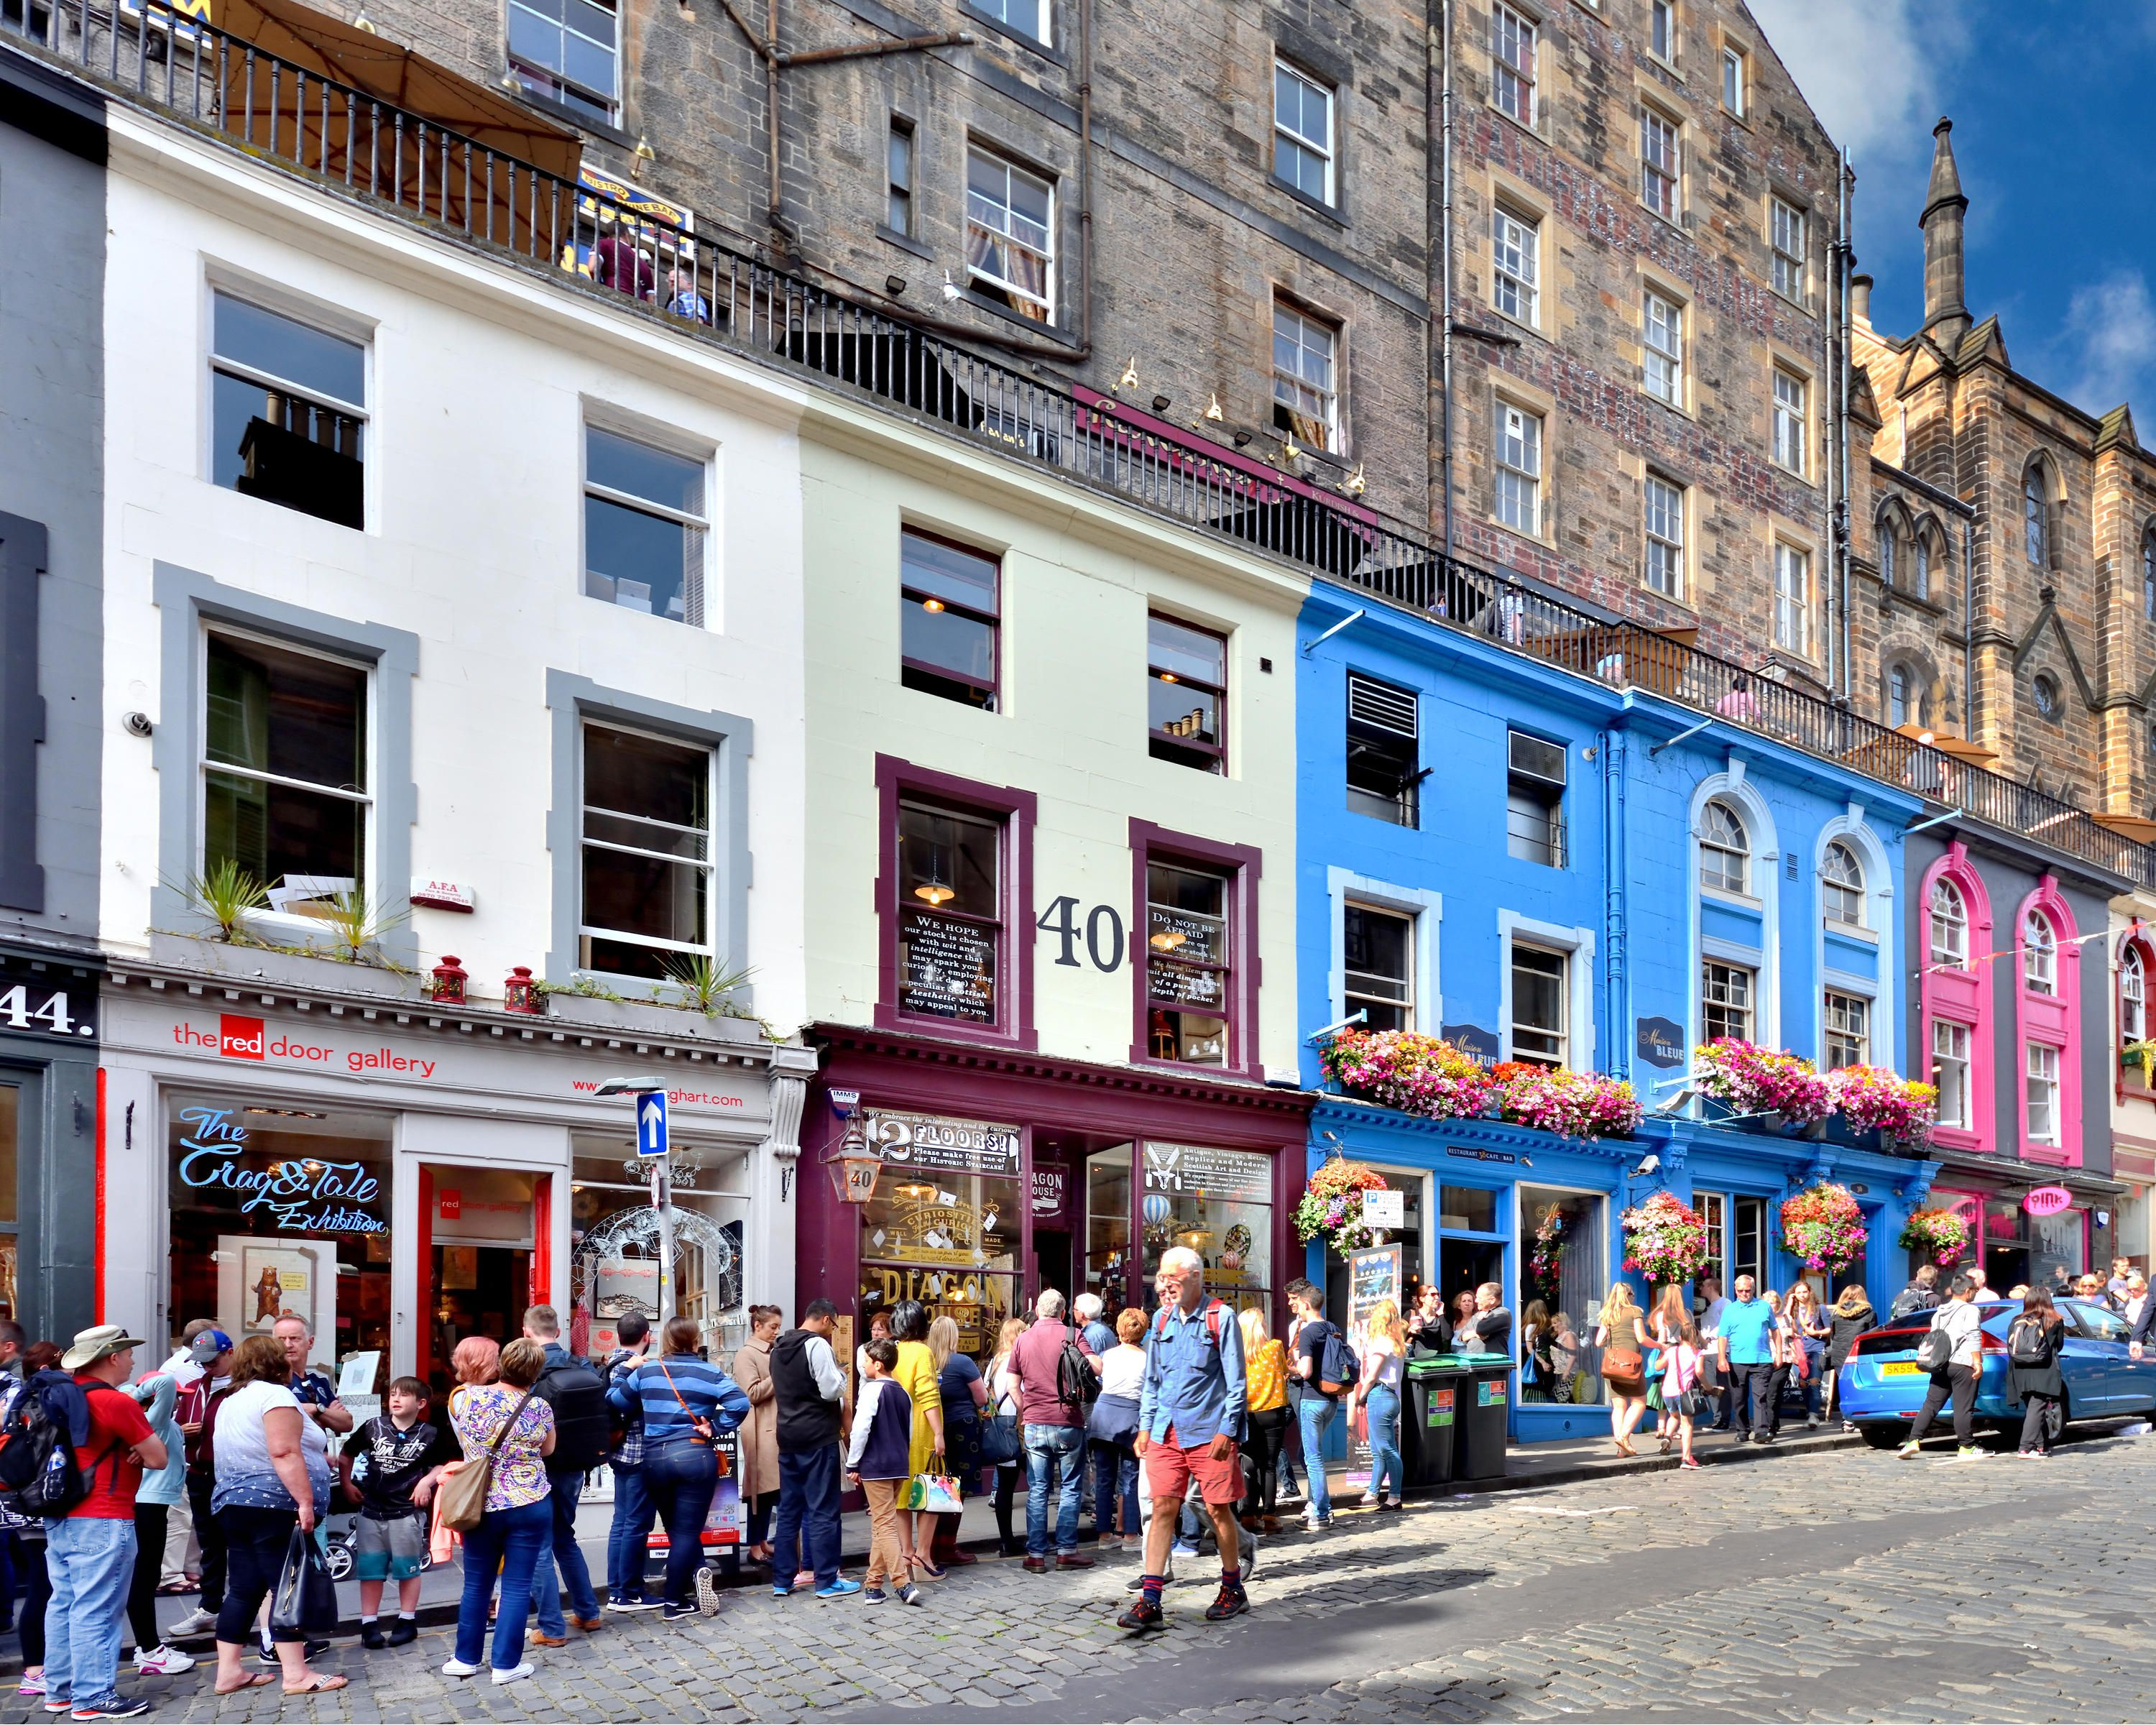 A New Harry Potter Shop In Edinburgh Has People Queuing Down The Street A New Store Dedicated To The World Of Harry Potter Has Opene Harry Potter Shop Edinburgh Harry Potter